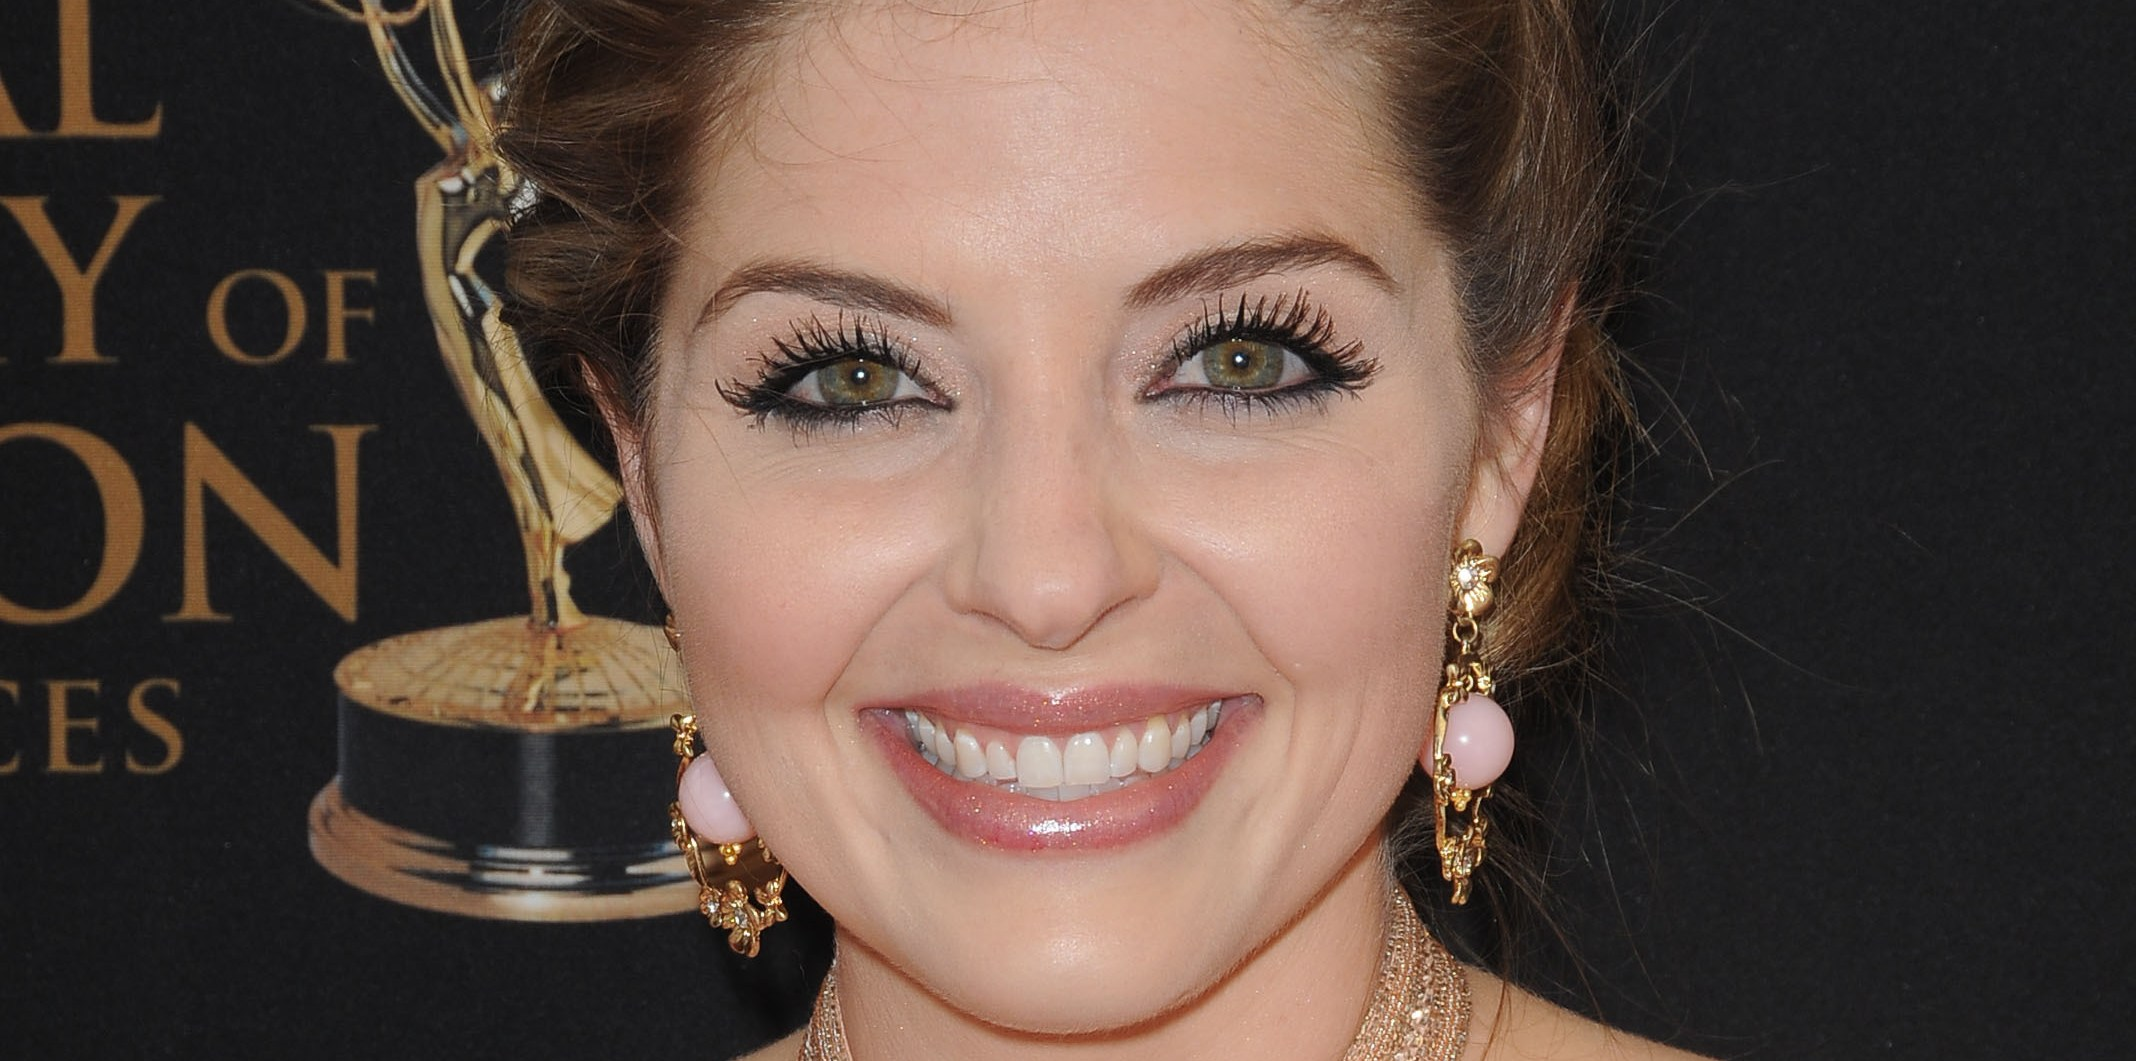 Jen Lilley 43rd Annual Daytime Emmy Awards Arrivals at the Westin Bonaventure in Los Angeles, Ca on Sunday May 1, 2016 5/1/16 © Jill Johnson/jpistudios.com 310-657-9661